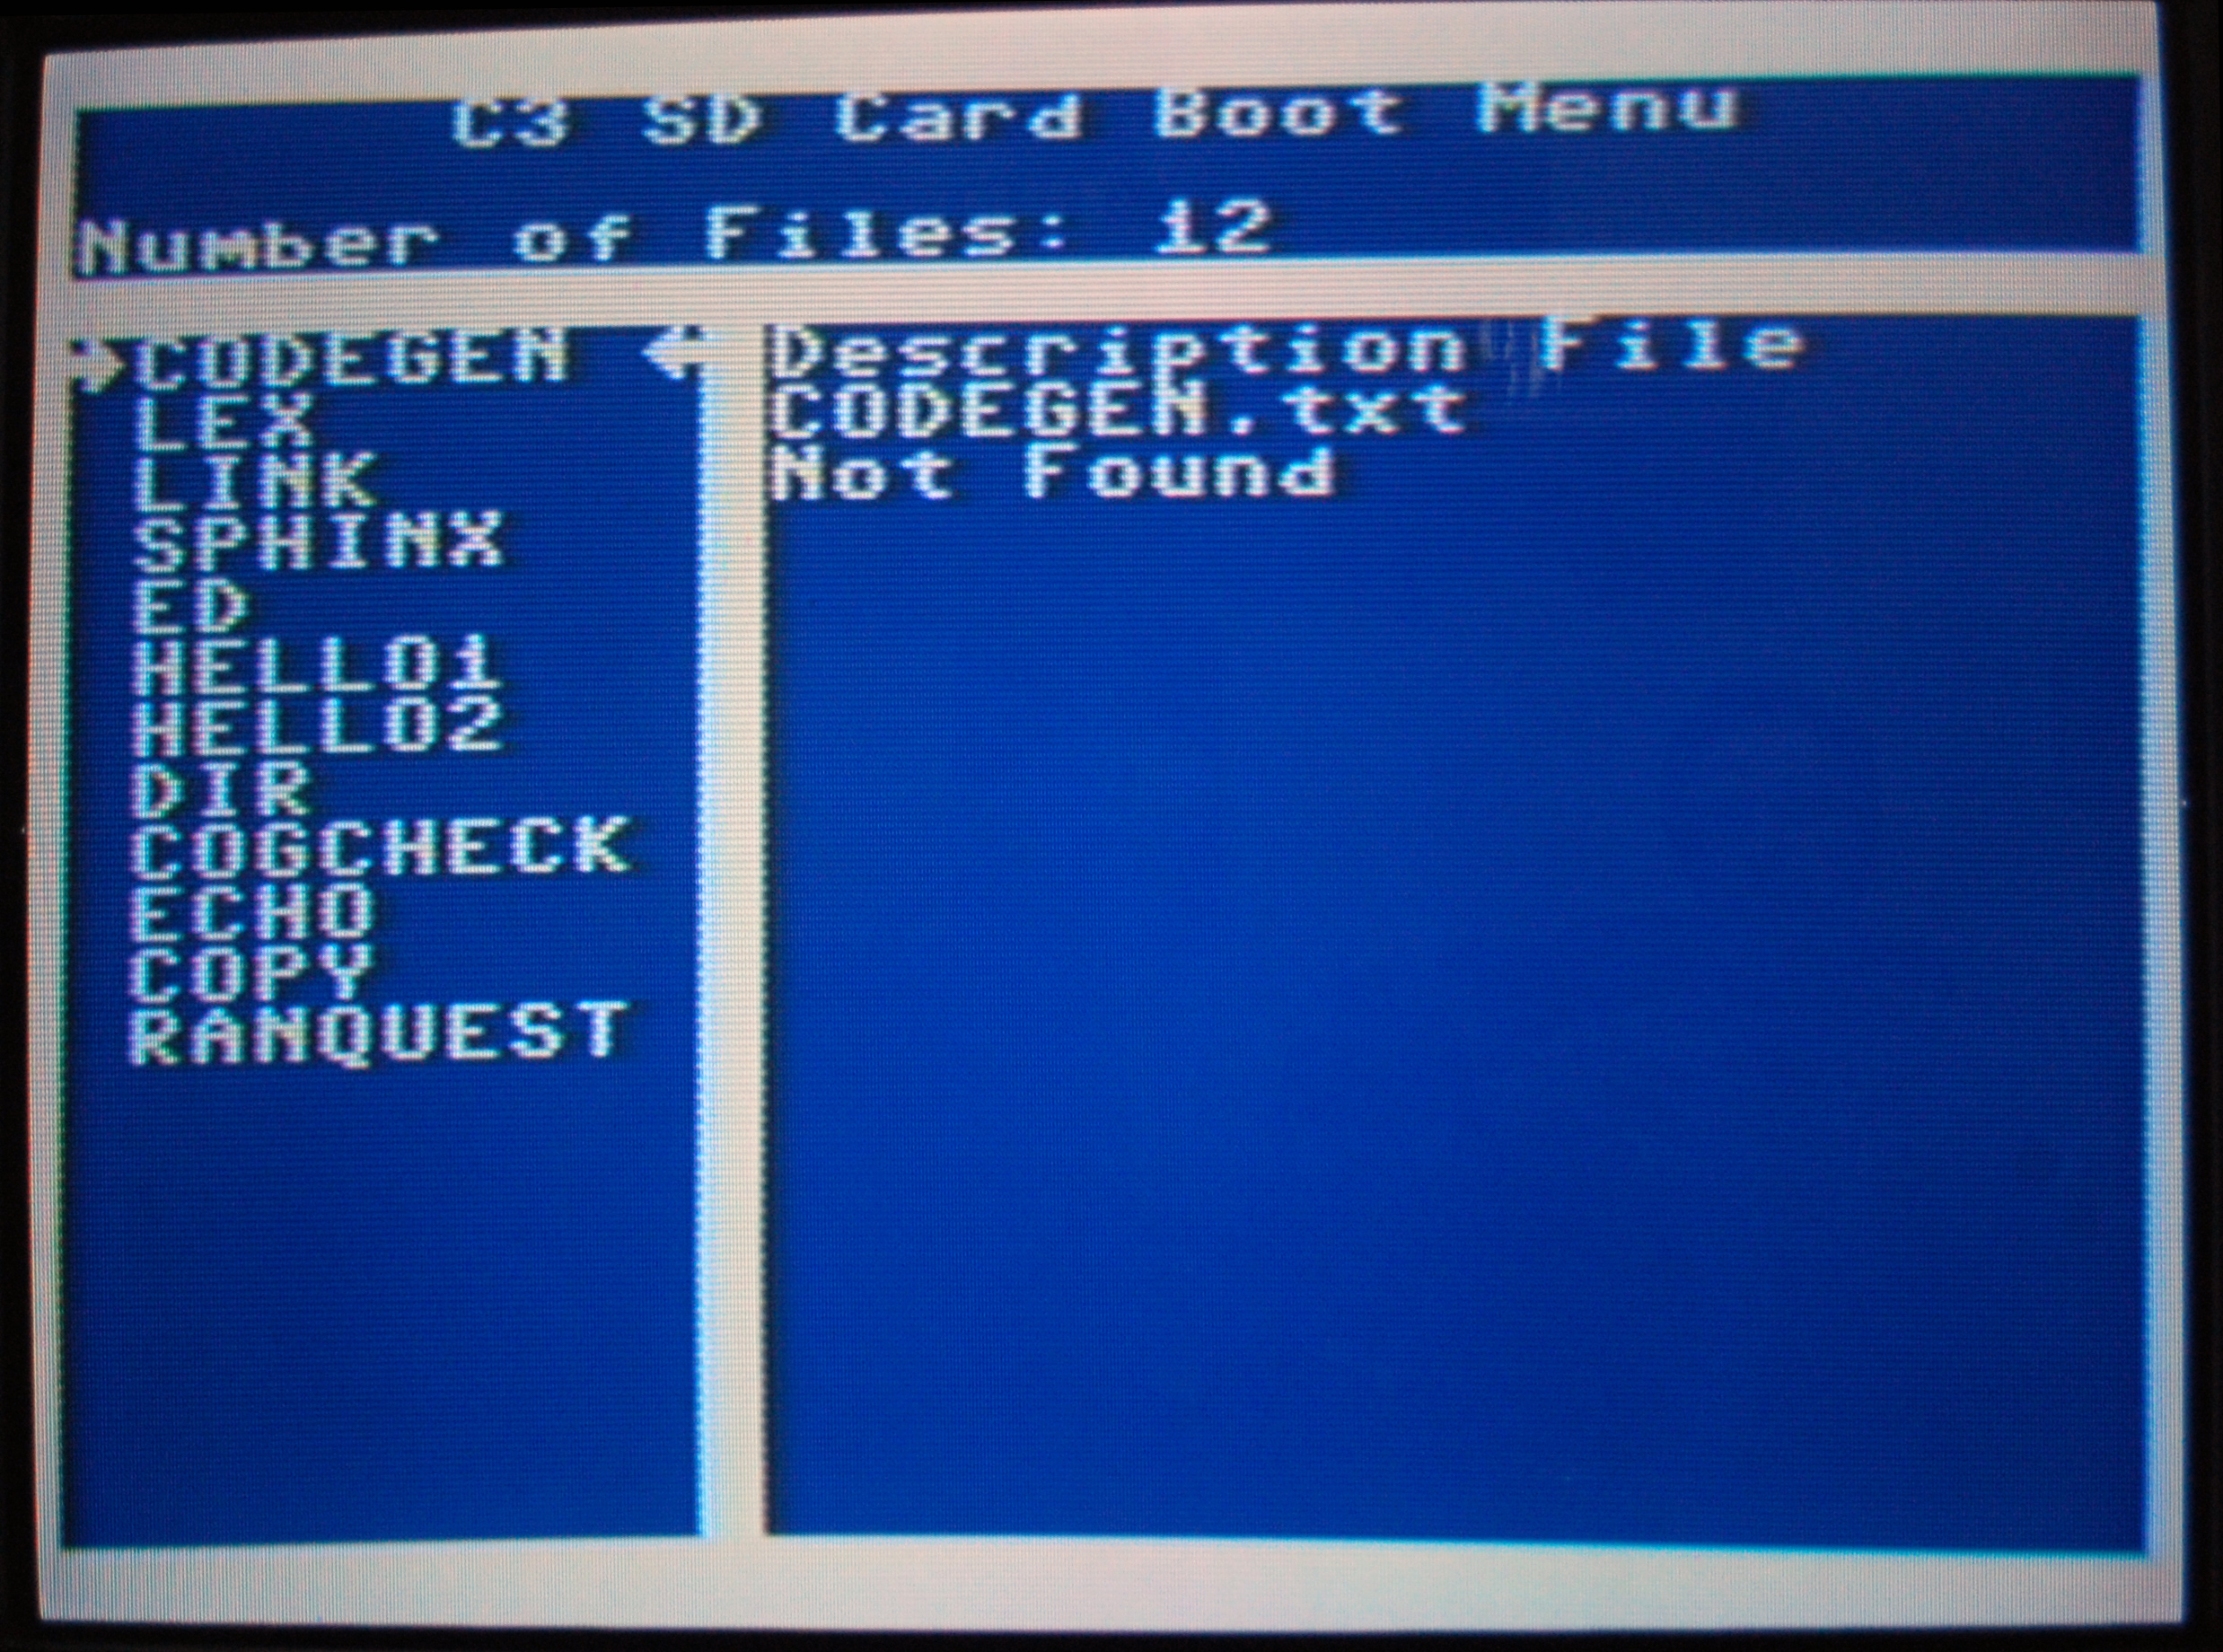 The Propeller C3 Boot Menu allows the C3 to boot from the SD Card!